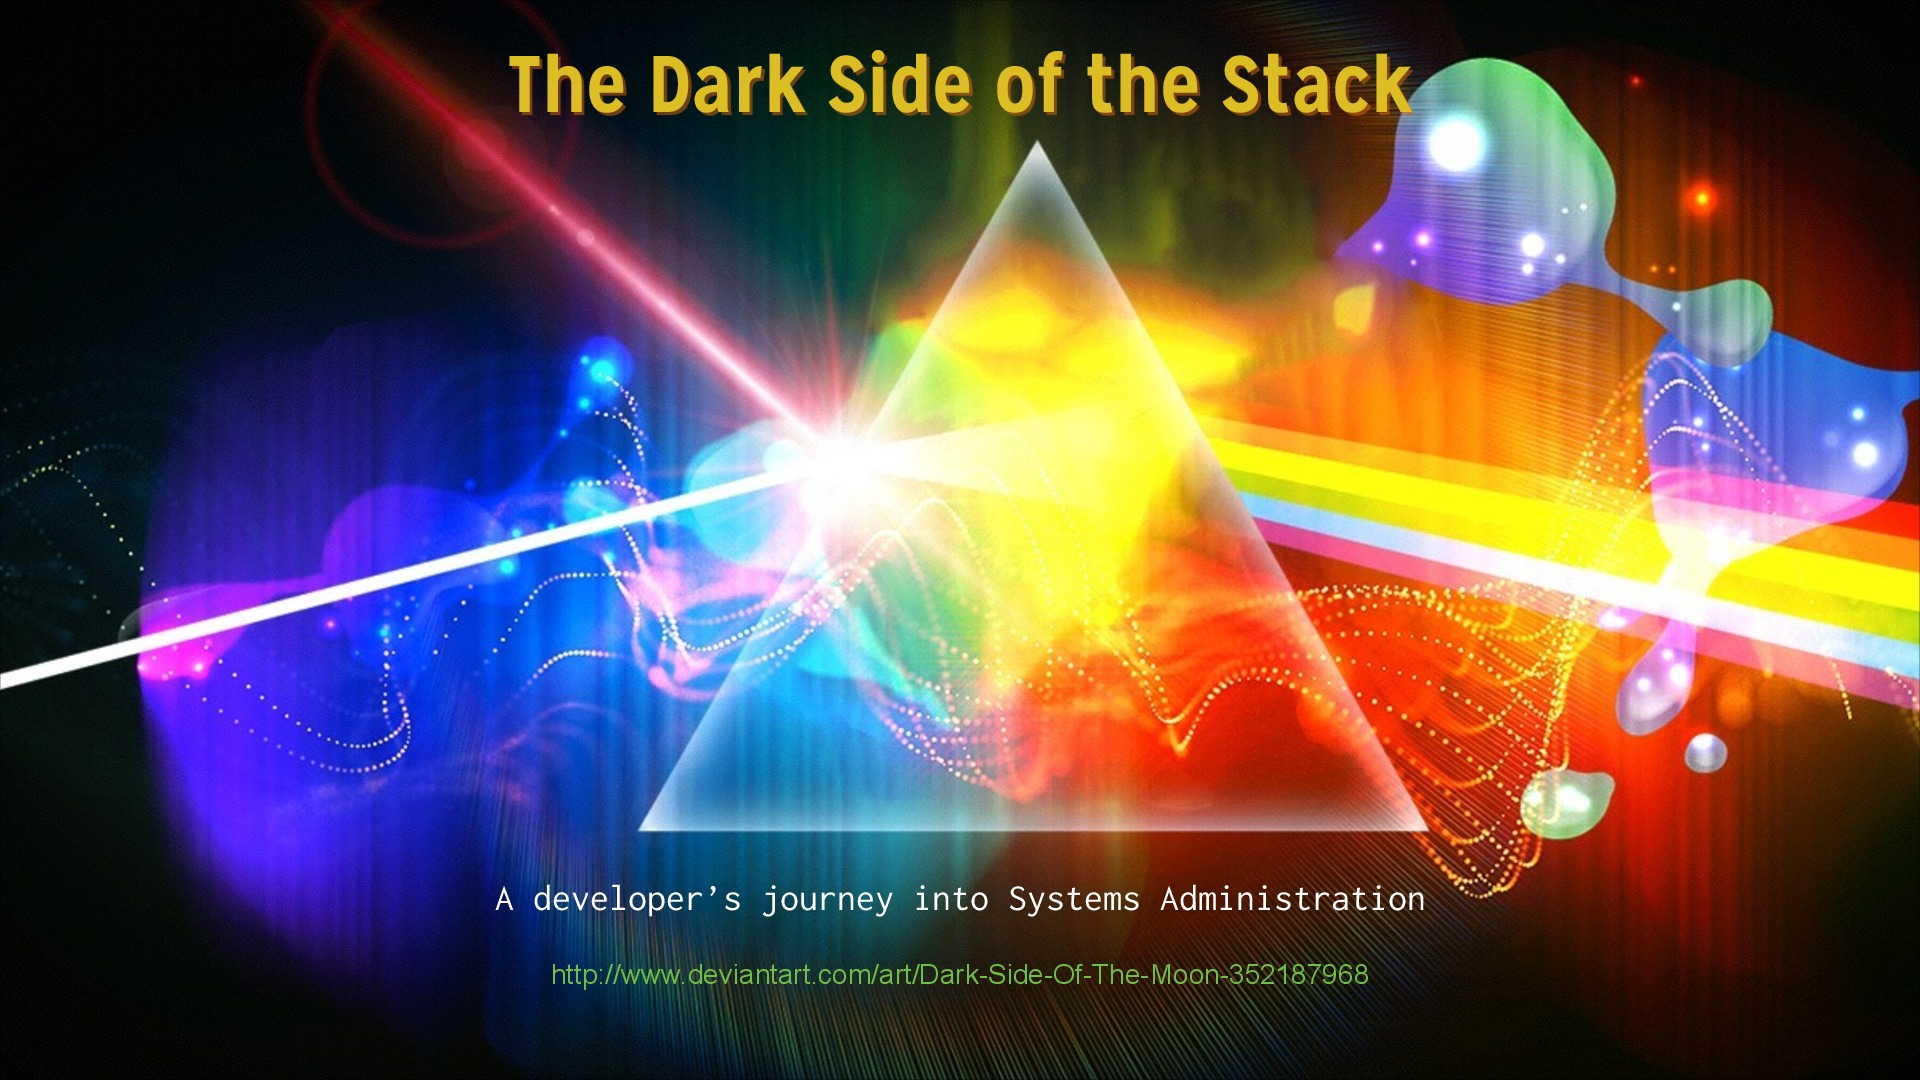 The Dark side of the Stack